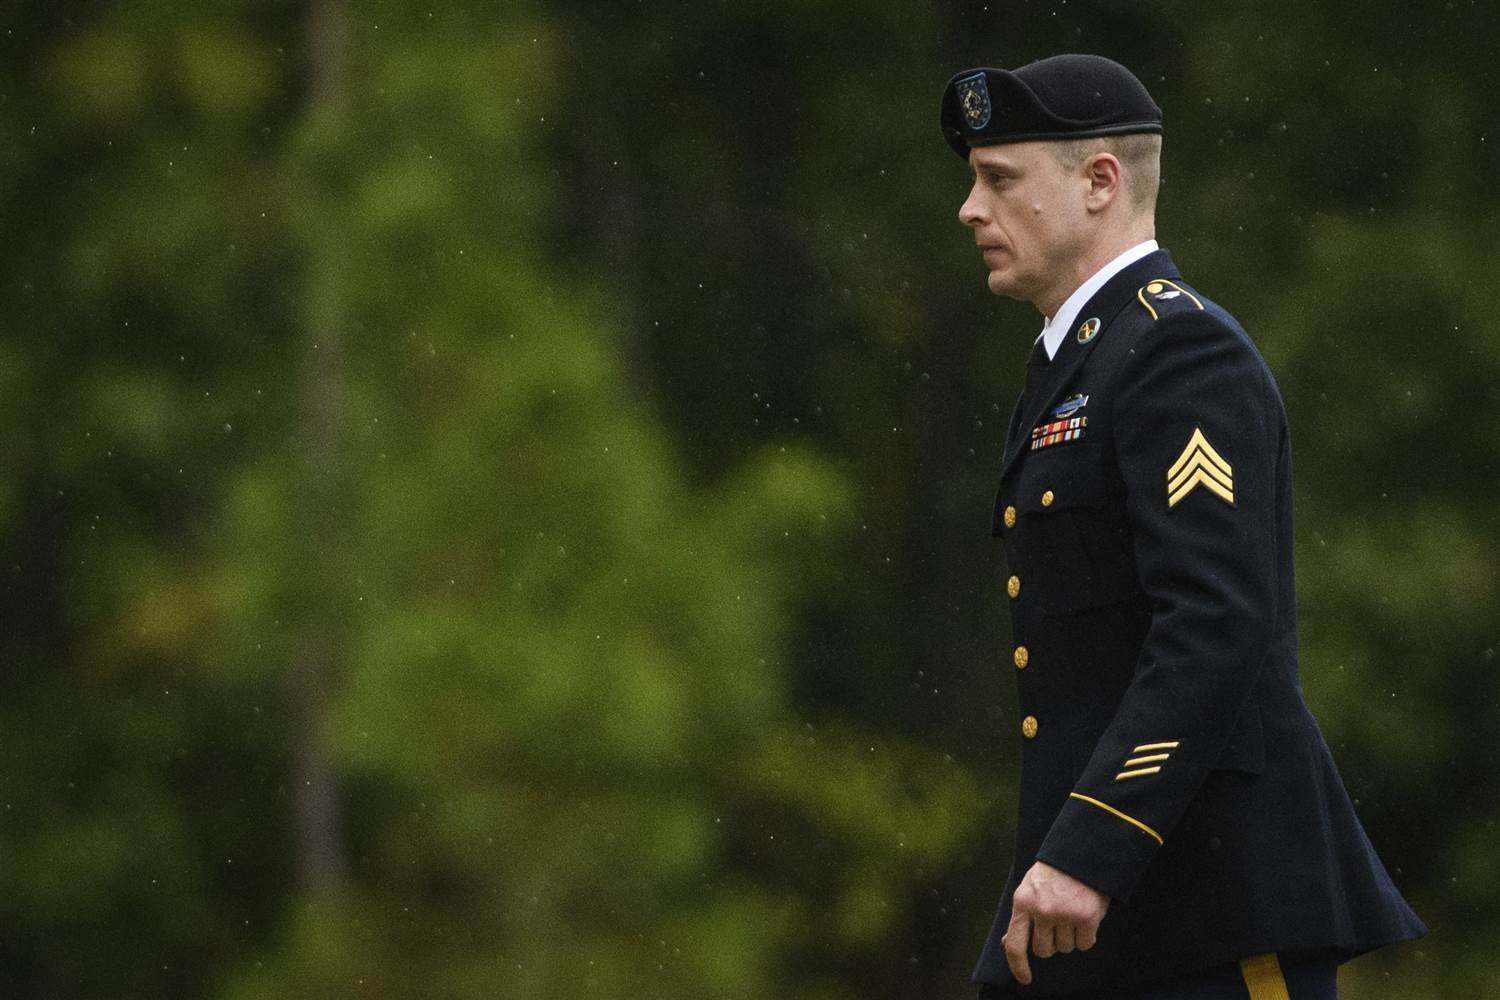 At Bergdahl's Sentencing, Those Forever Harmed by Search to Speak